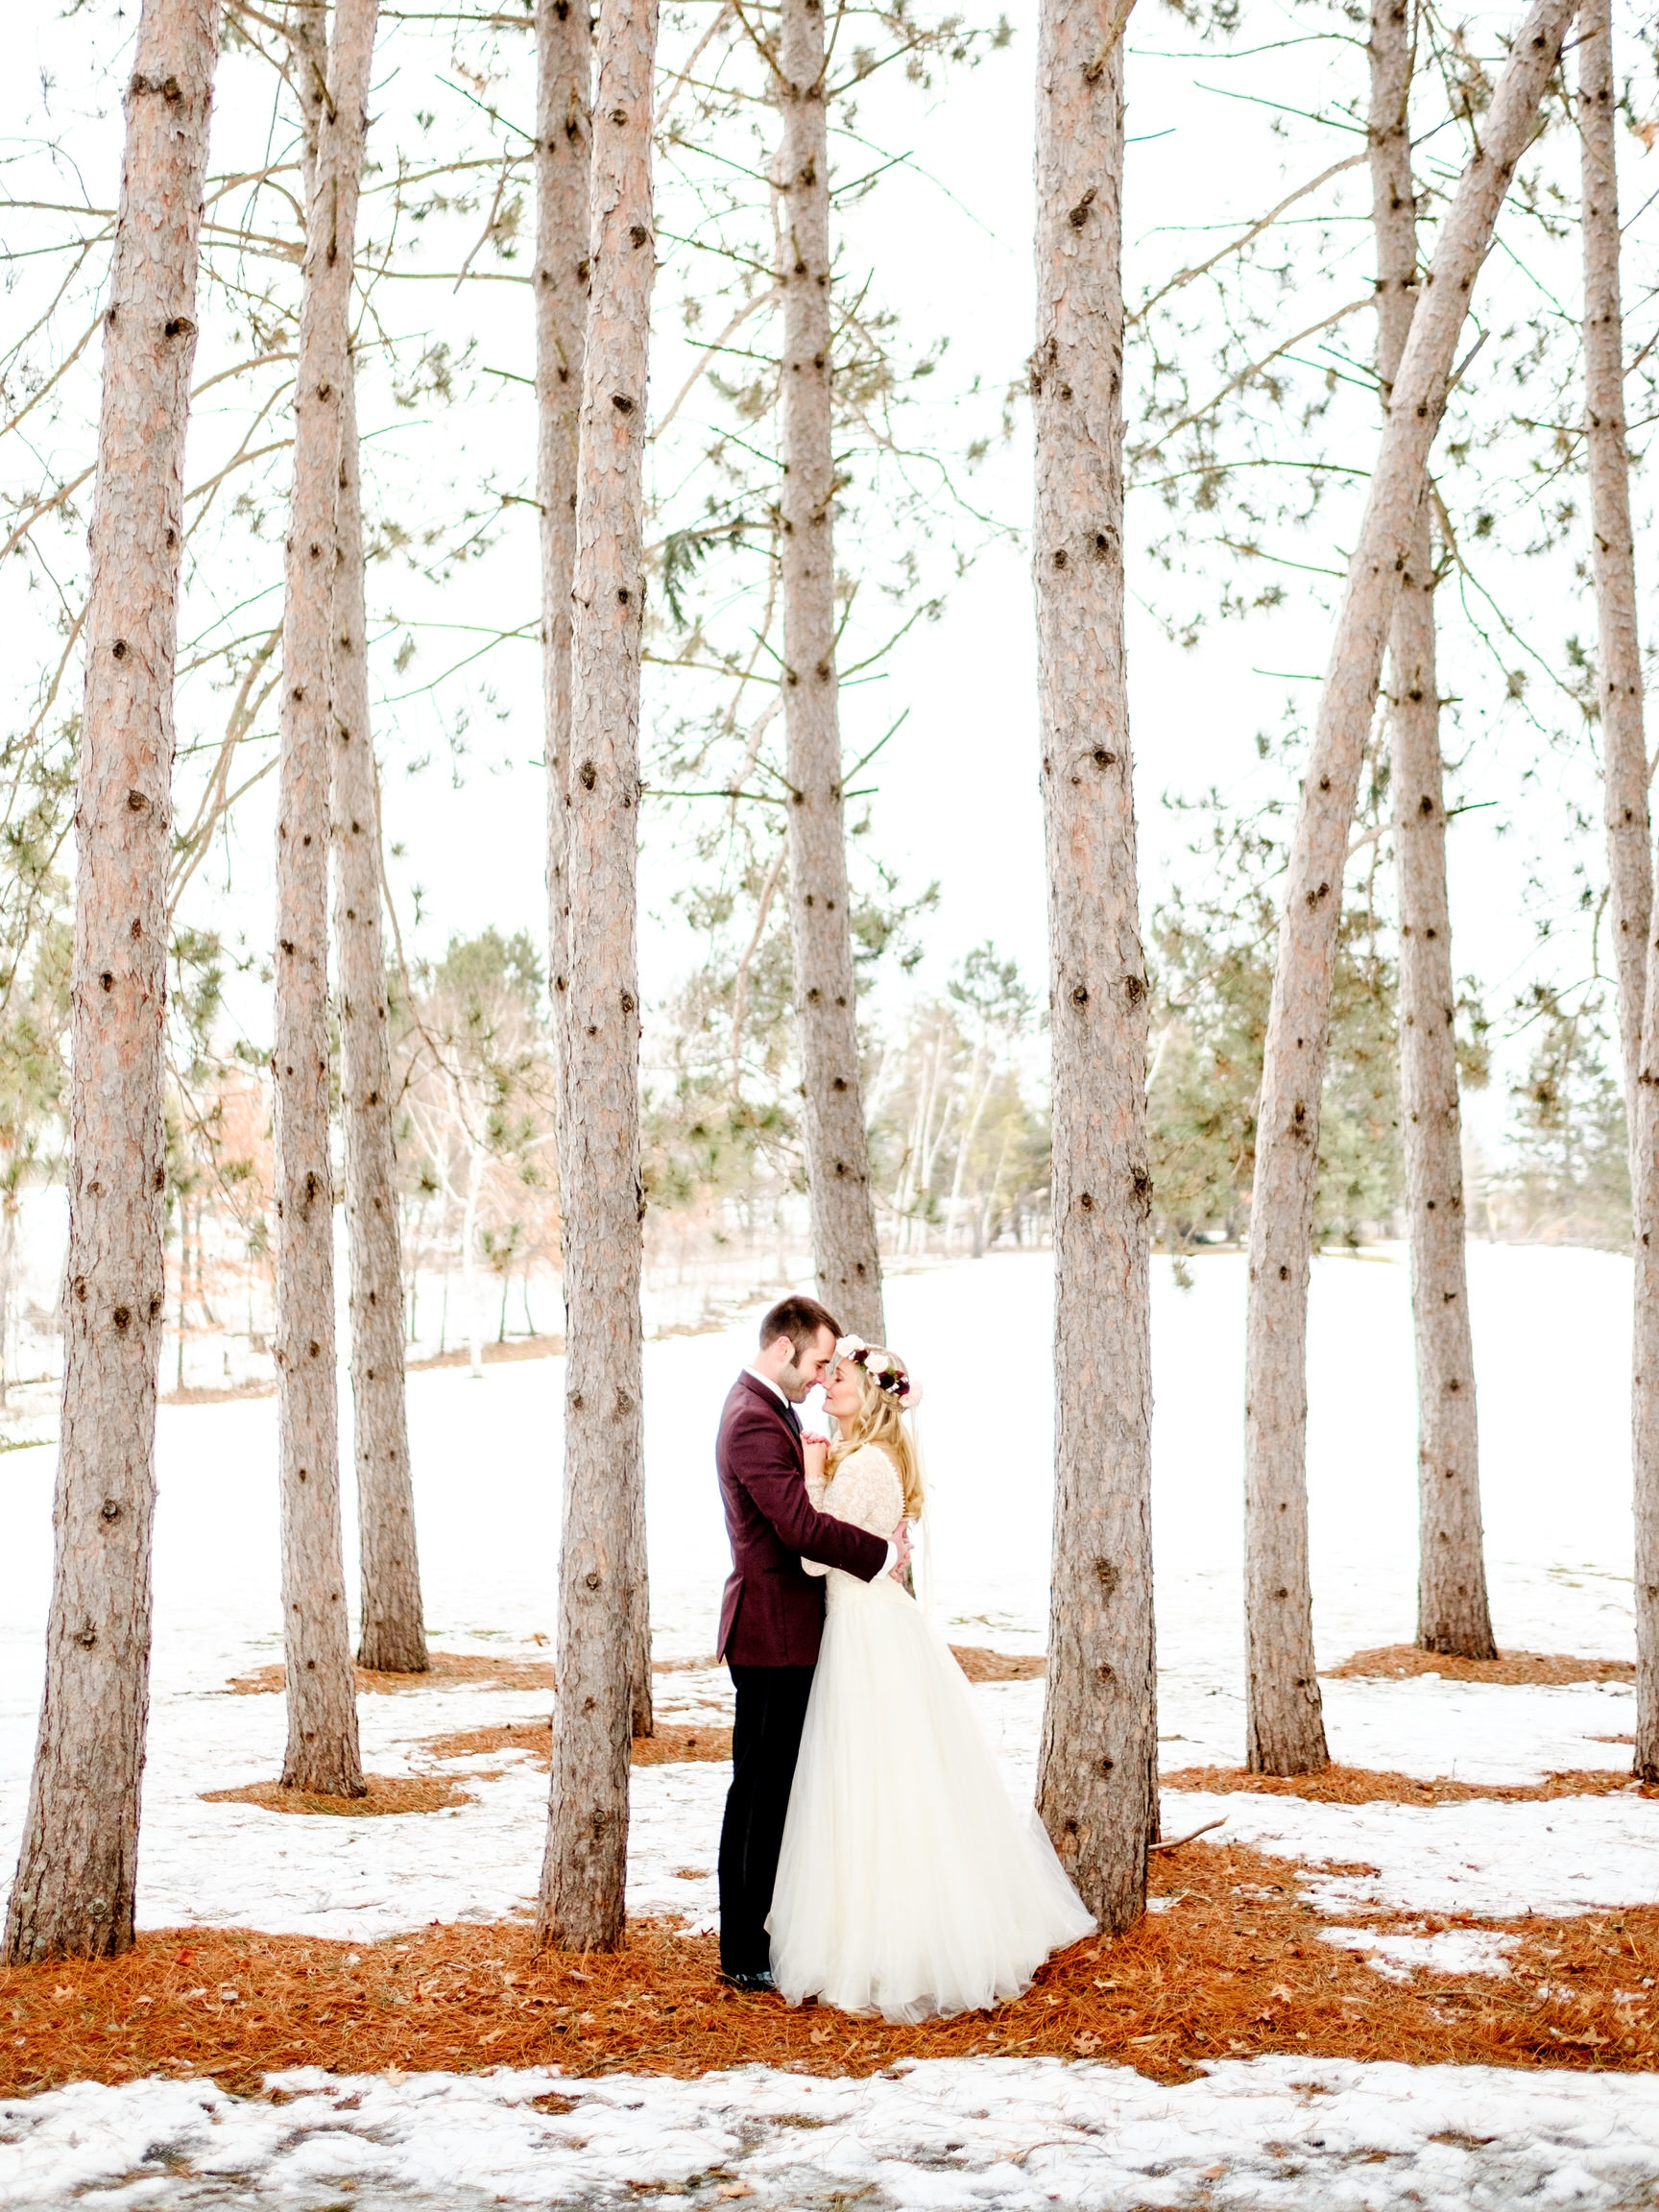 snowy wedding images in northern mn